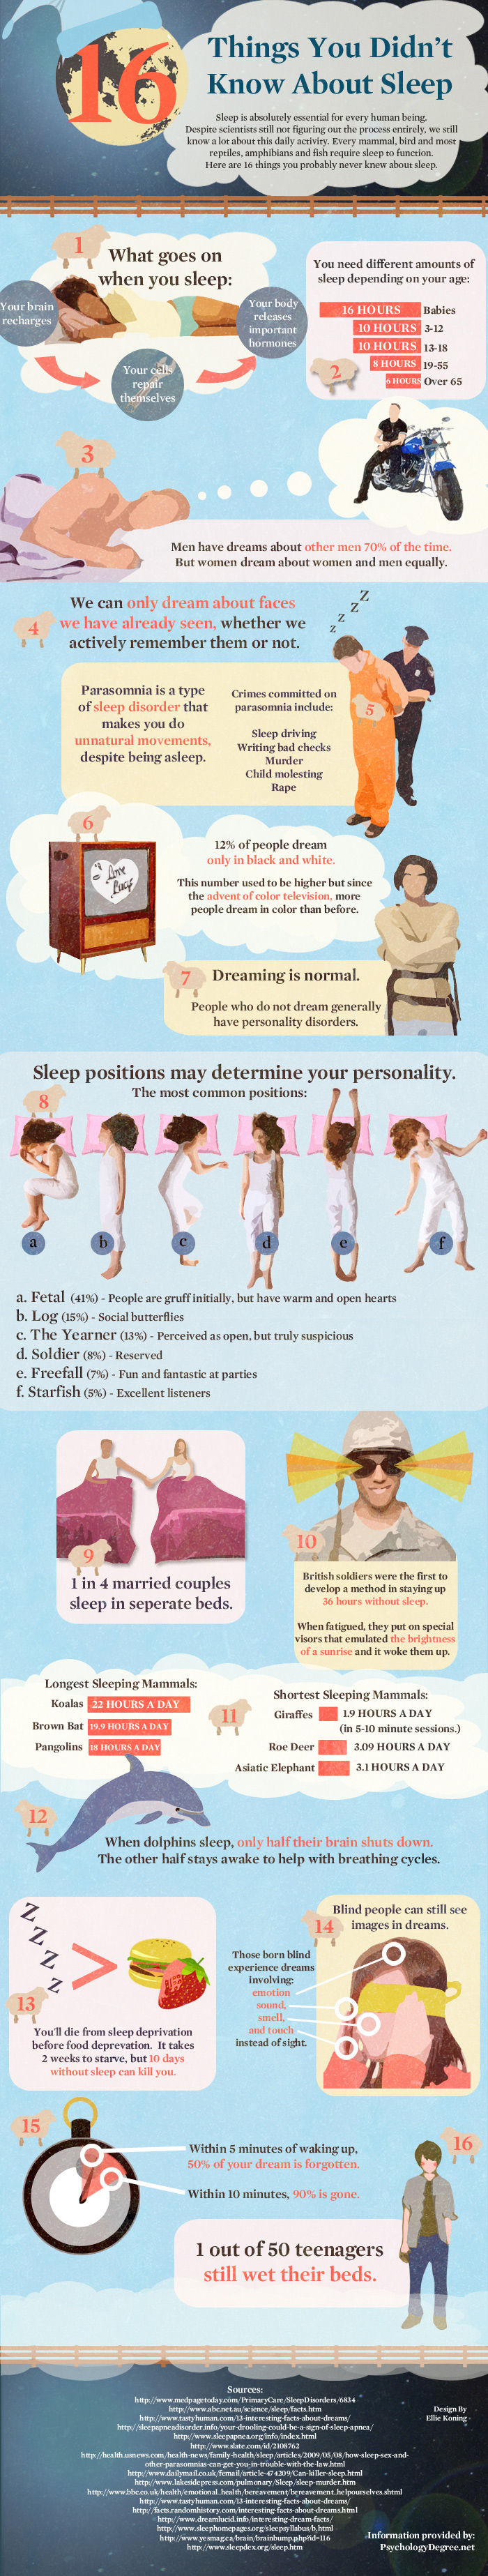 Things you didn't Know about Sleep